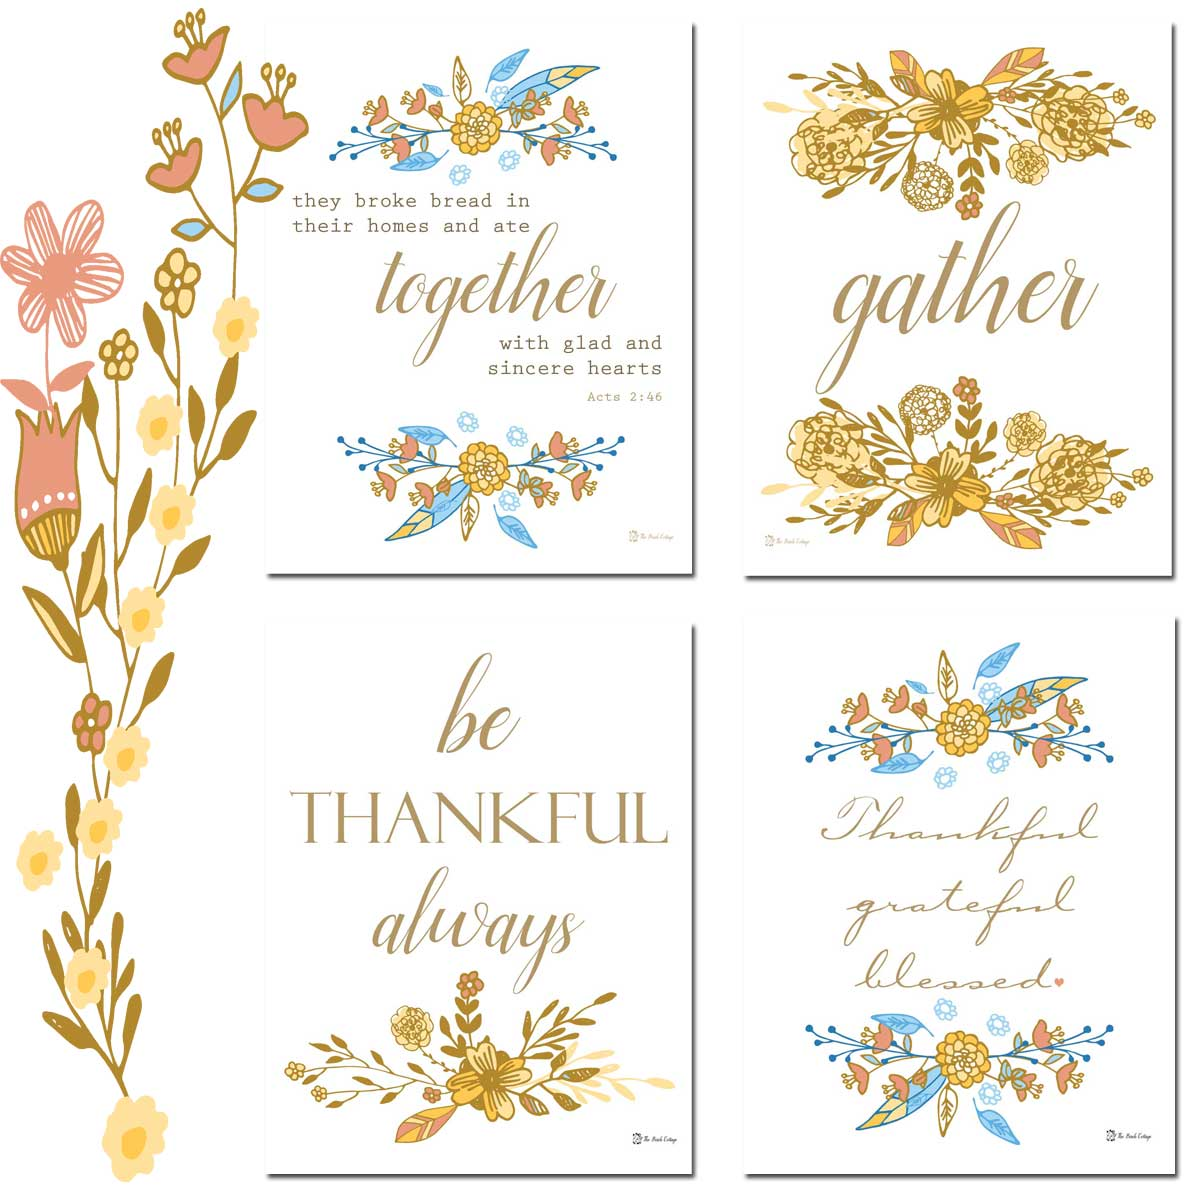 image about Thankful Printable identify No cost Printable Thanksgiving Prints - The Birch Cottage